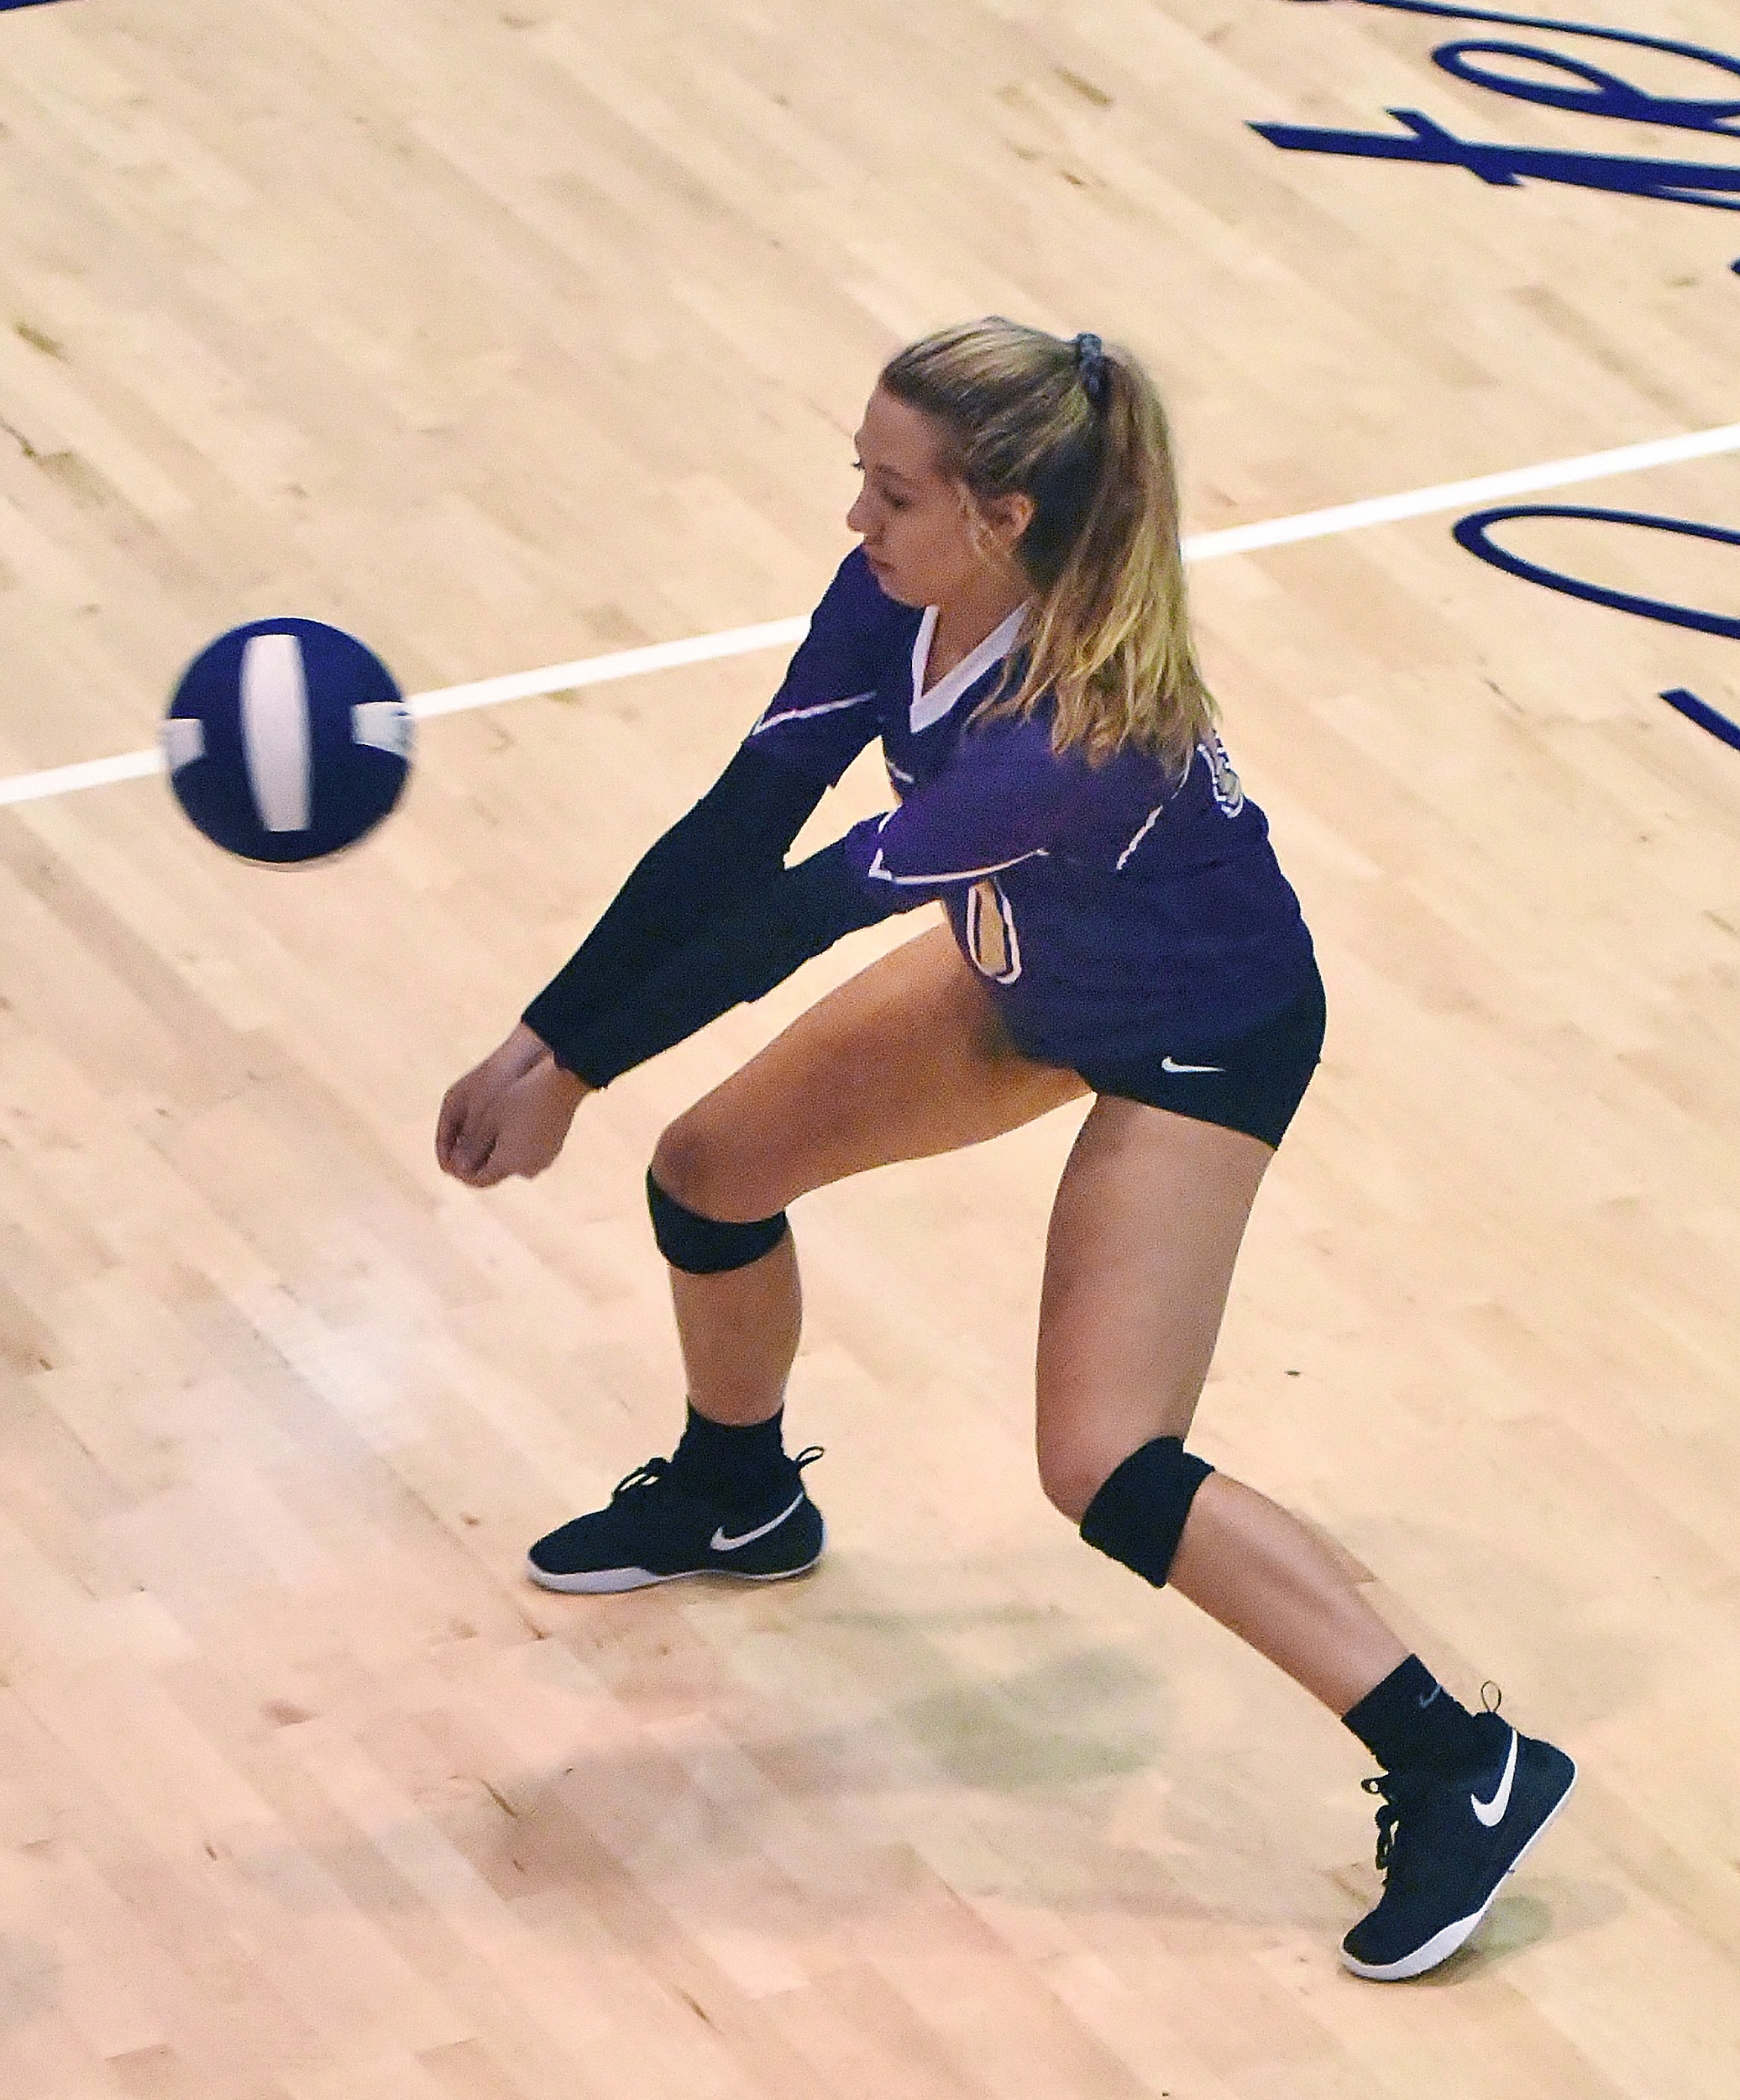 Cartersville's Anna Mathis bumps the ball during Thursday's match at The Storm Center.